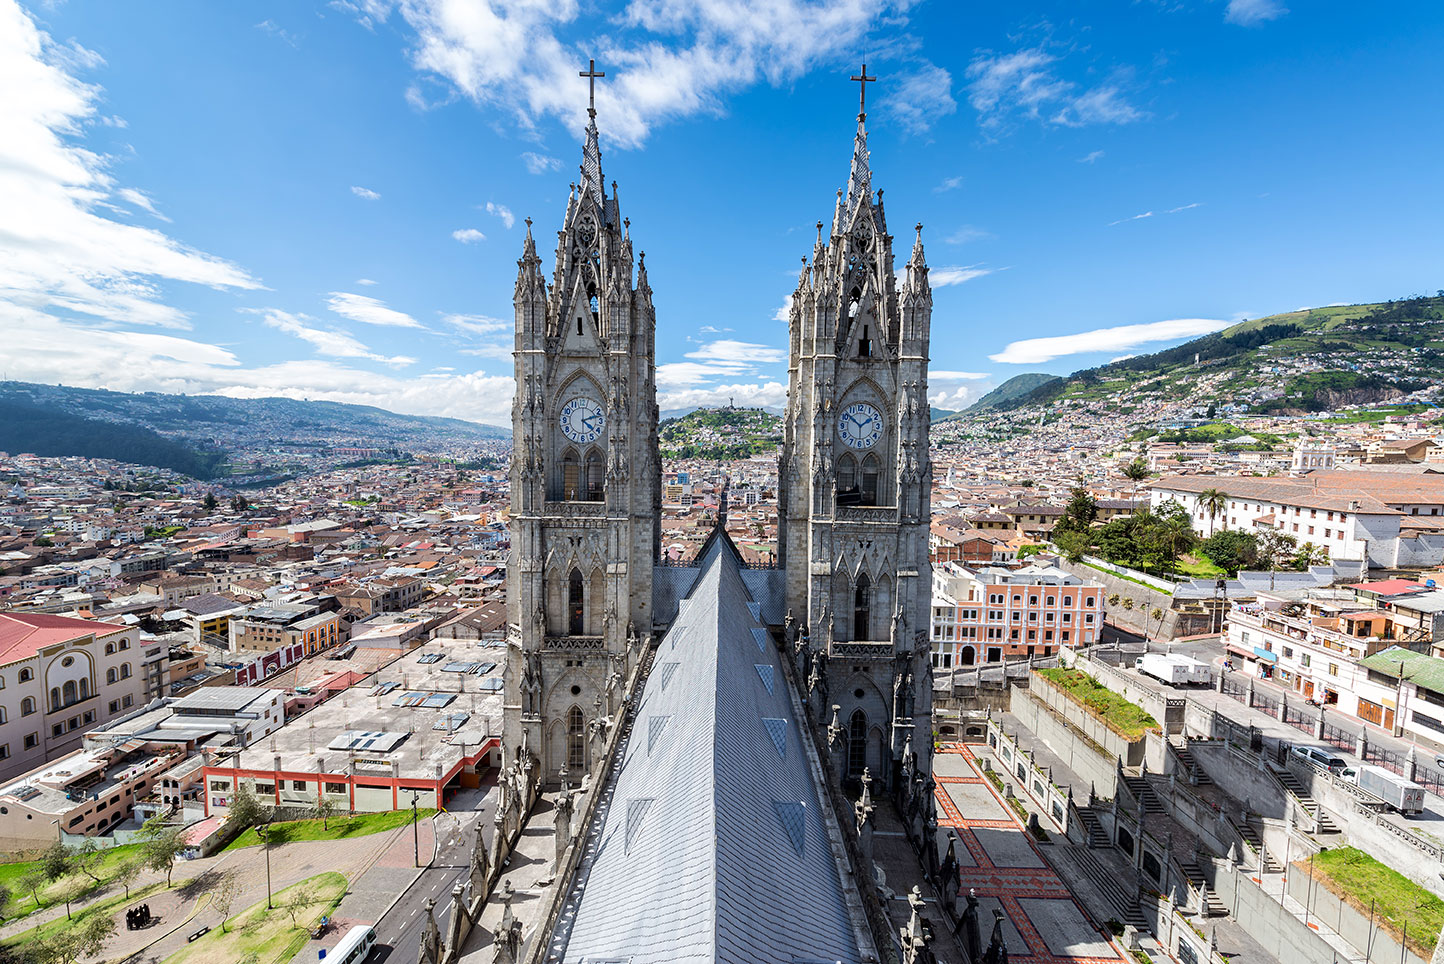 Twin steeples of the Basilica overlooking a city in Ecuador